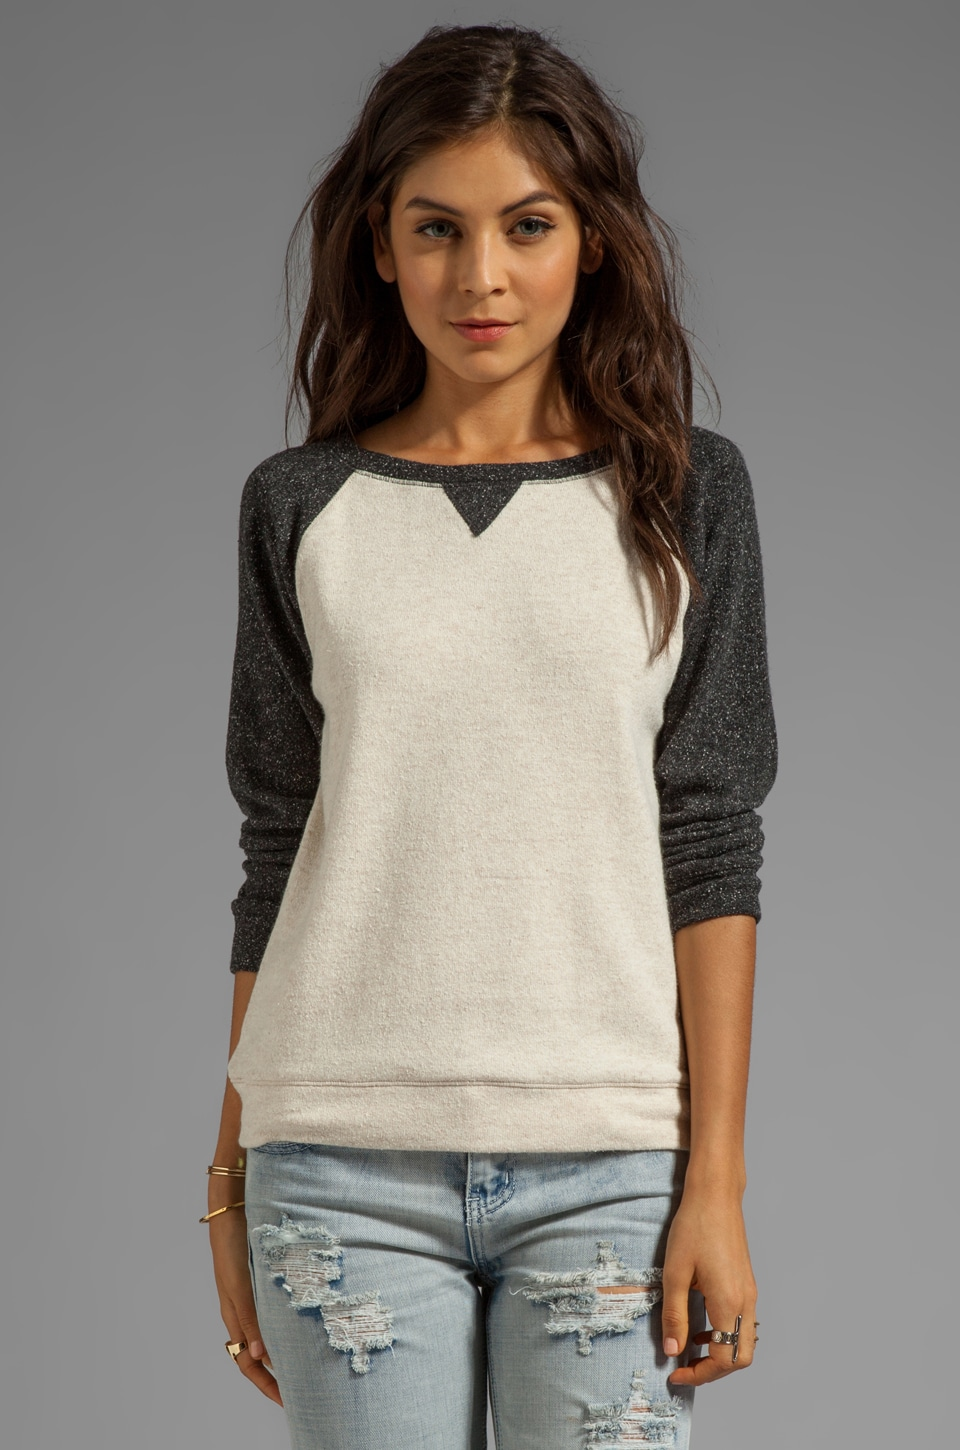 Graham & Spencer Brushed Sweatshirt in Charcoal/Oatmeal